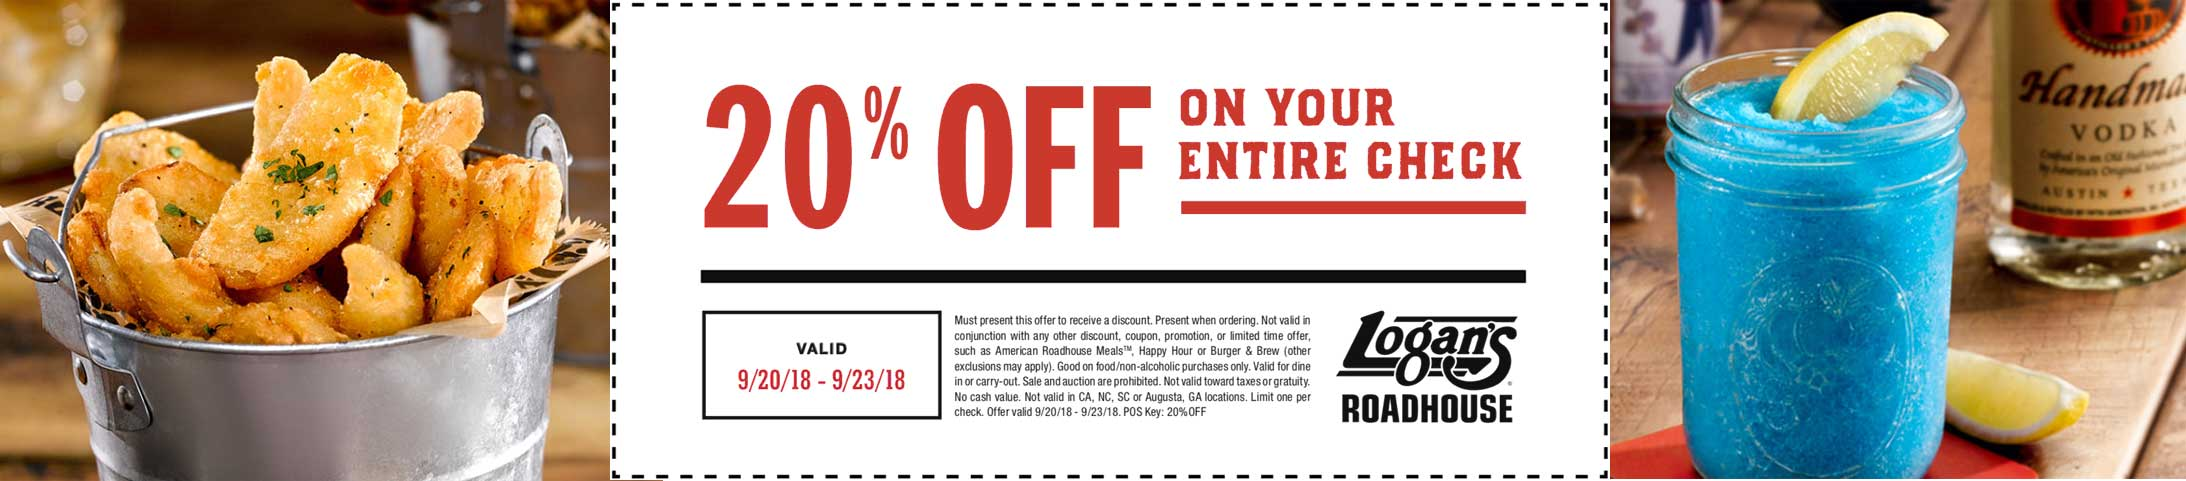 Logans Roadhouse Coupon May 2020 20% off at Logans Roadhouse restaurants